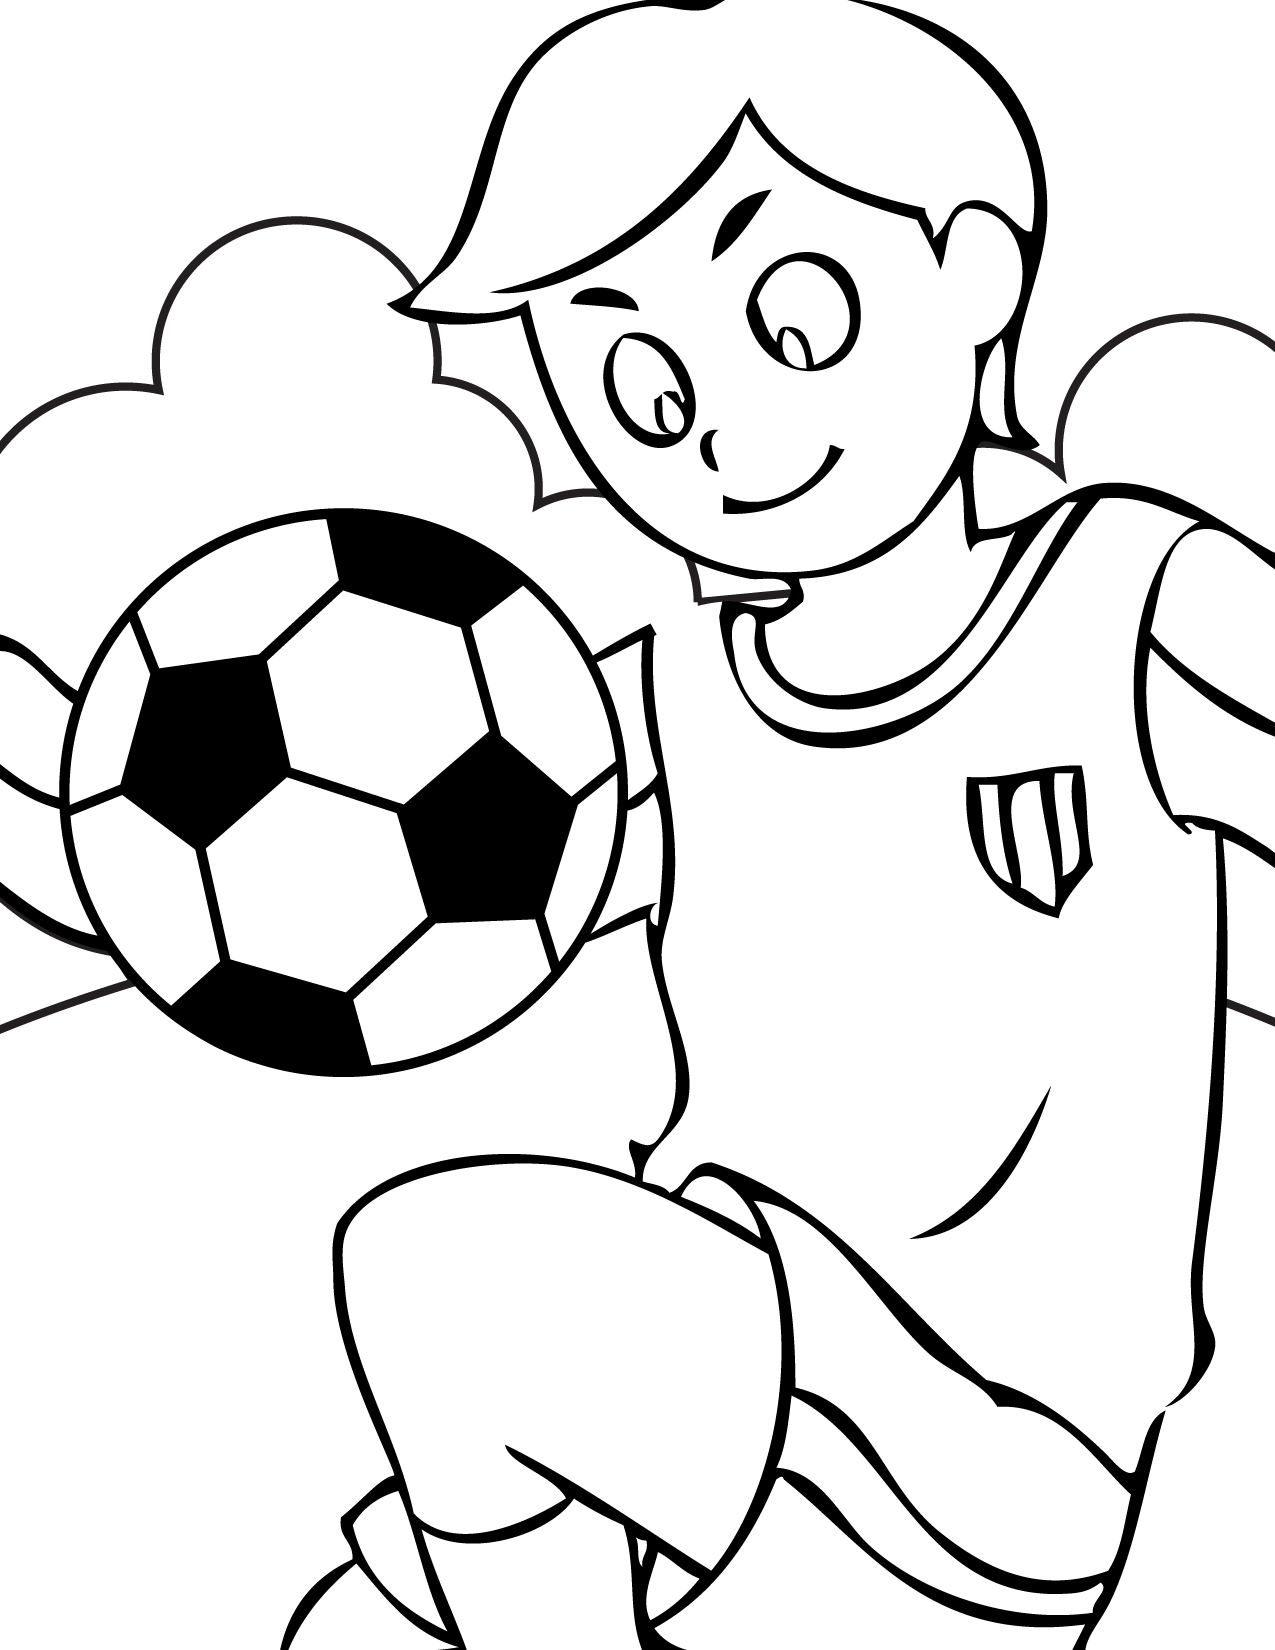 soccer colouring pictures free printable soccer coloring pages for kids pictures colouring soccer